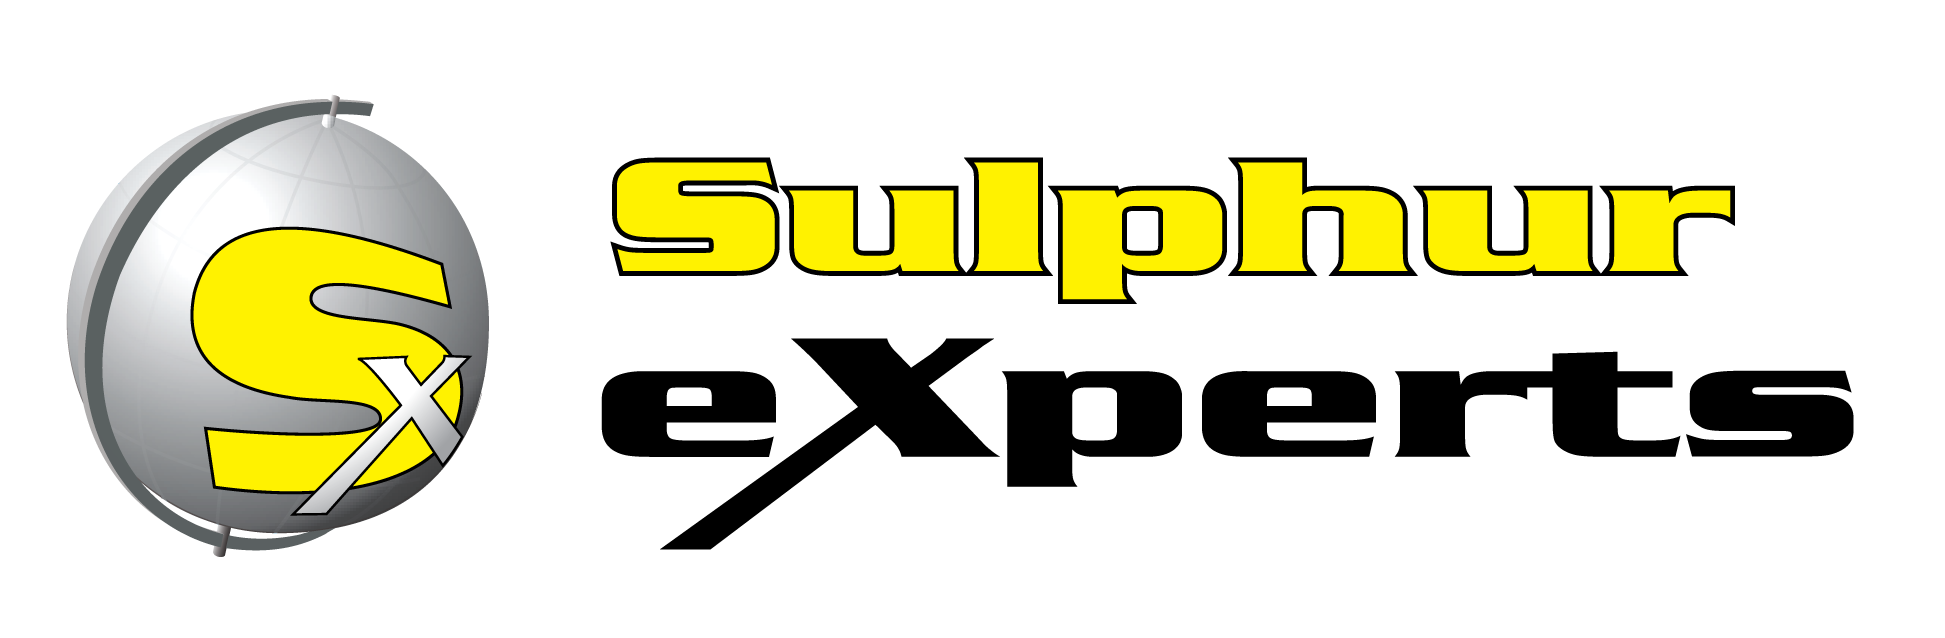 Sulphur Experts logo